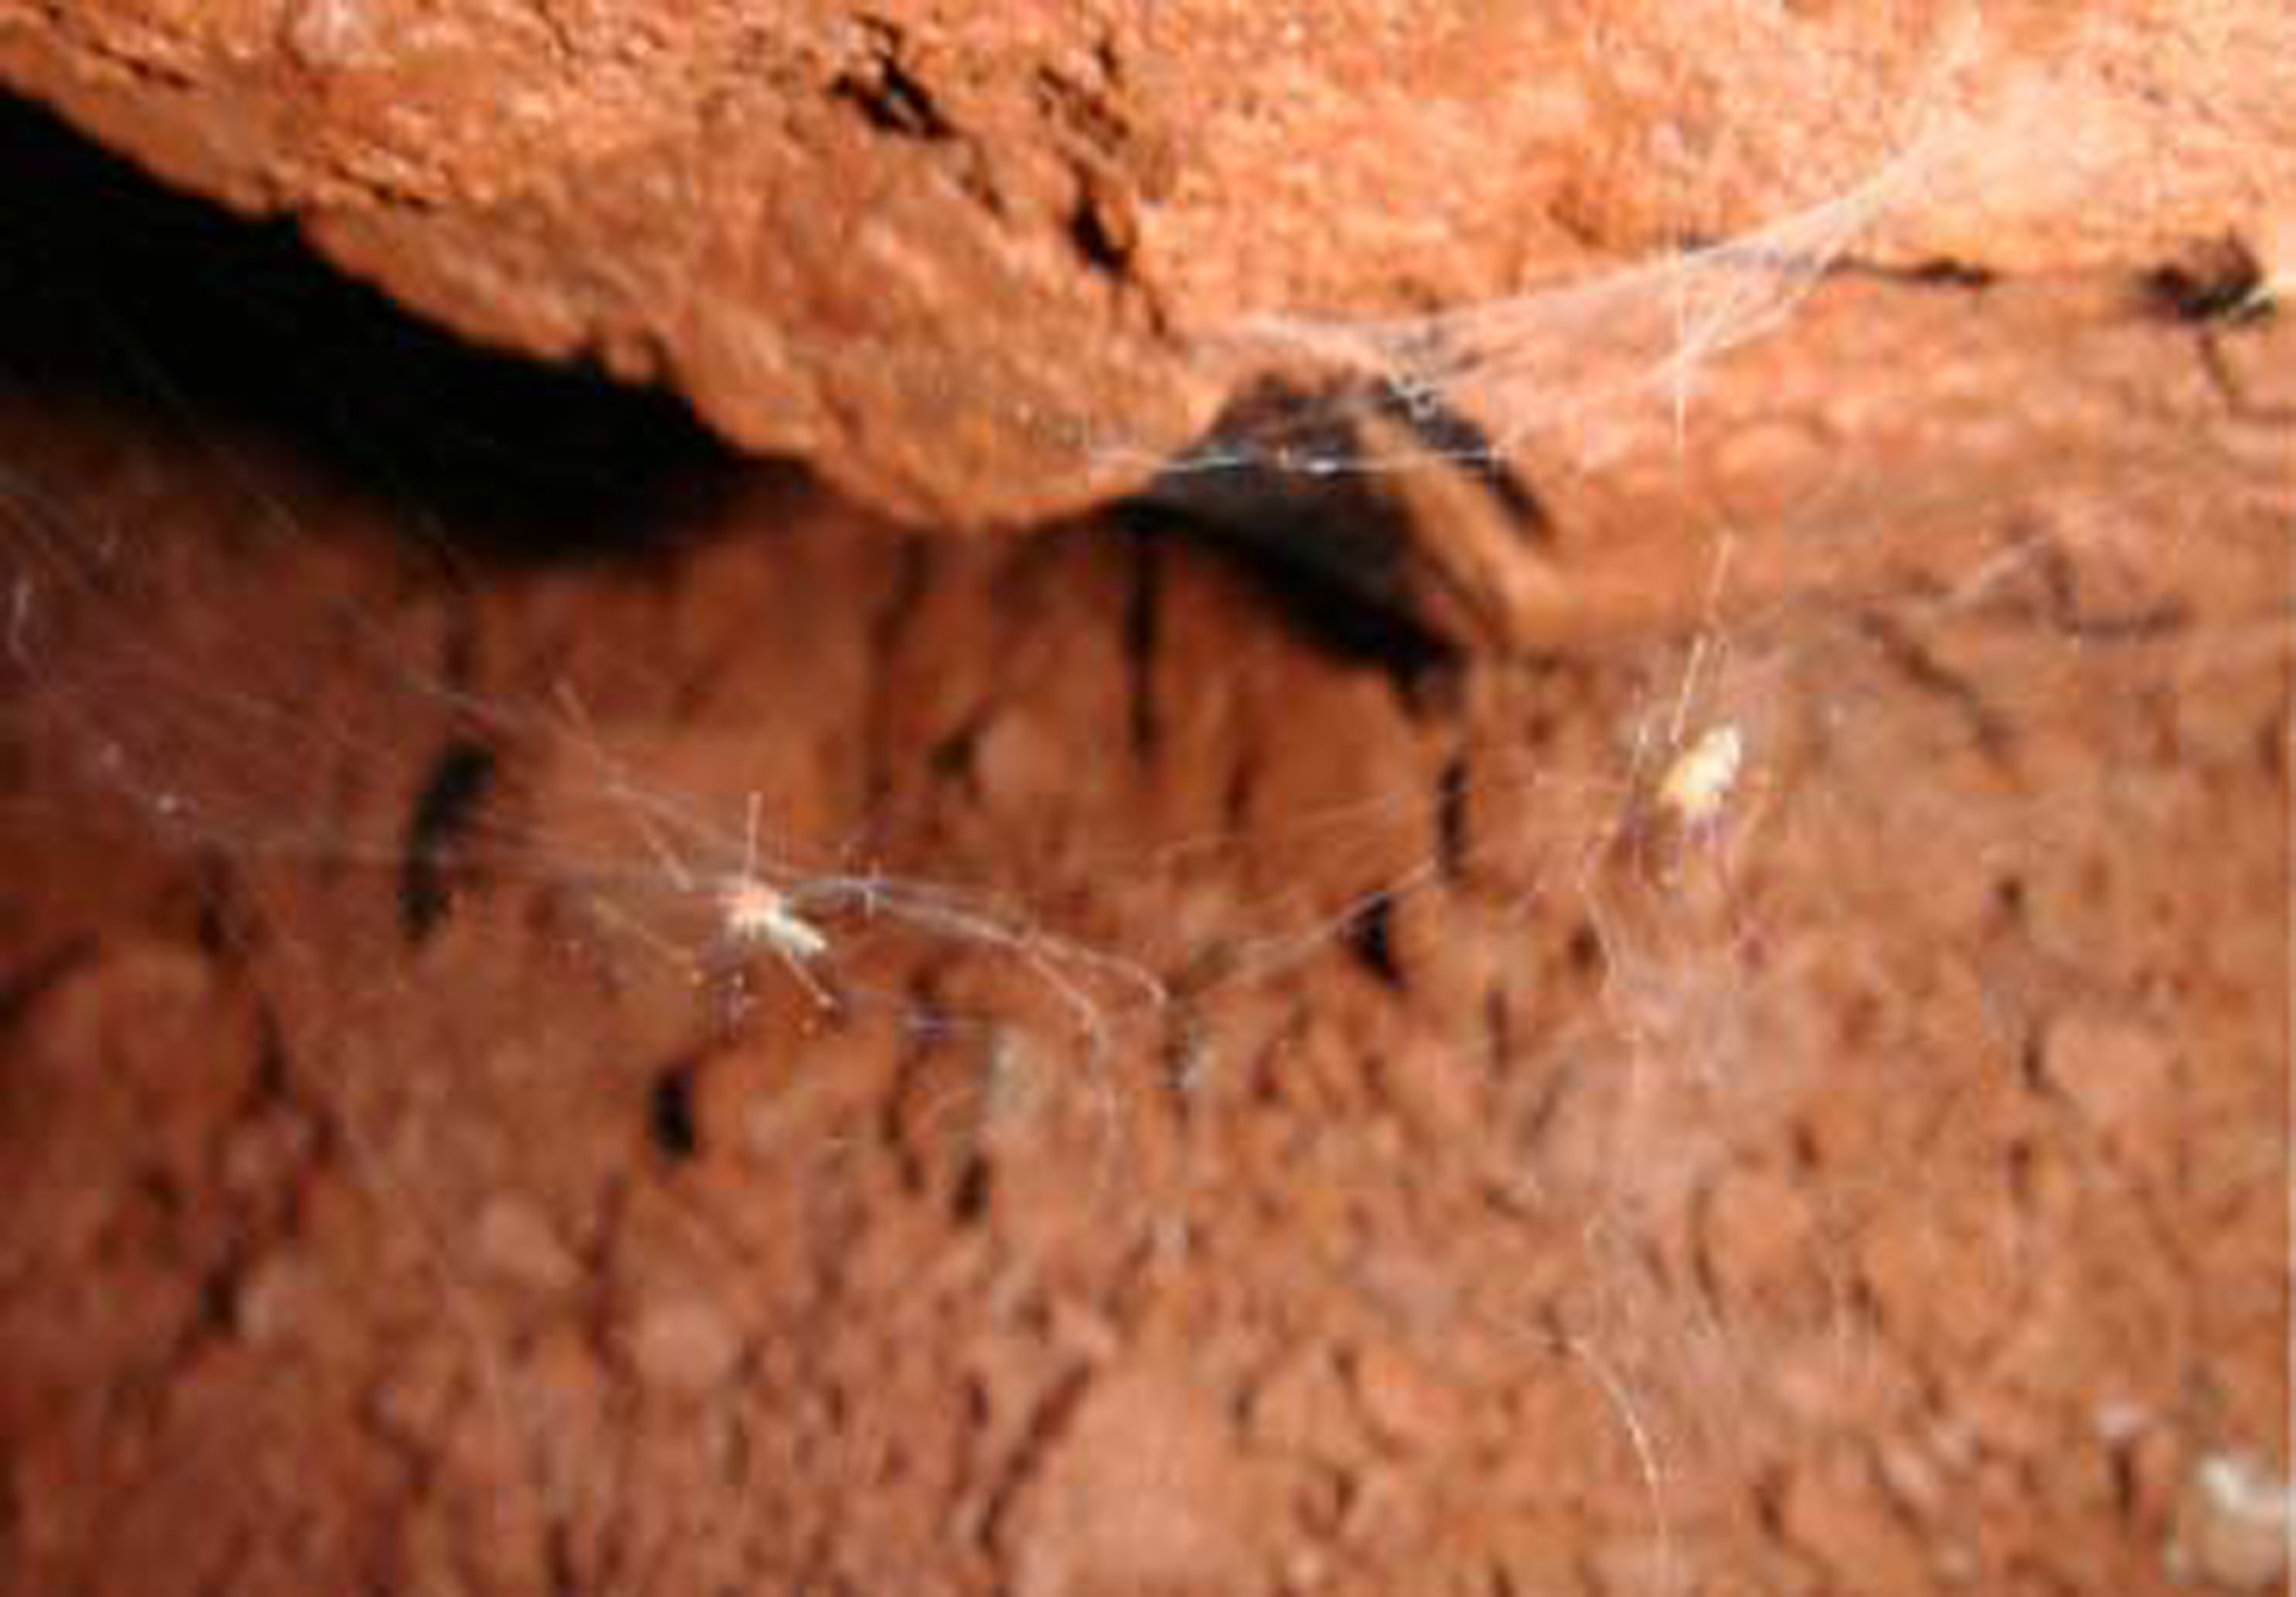 The species Ochyrocera misspider gets its name from Little Miss Spider.